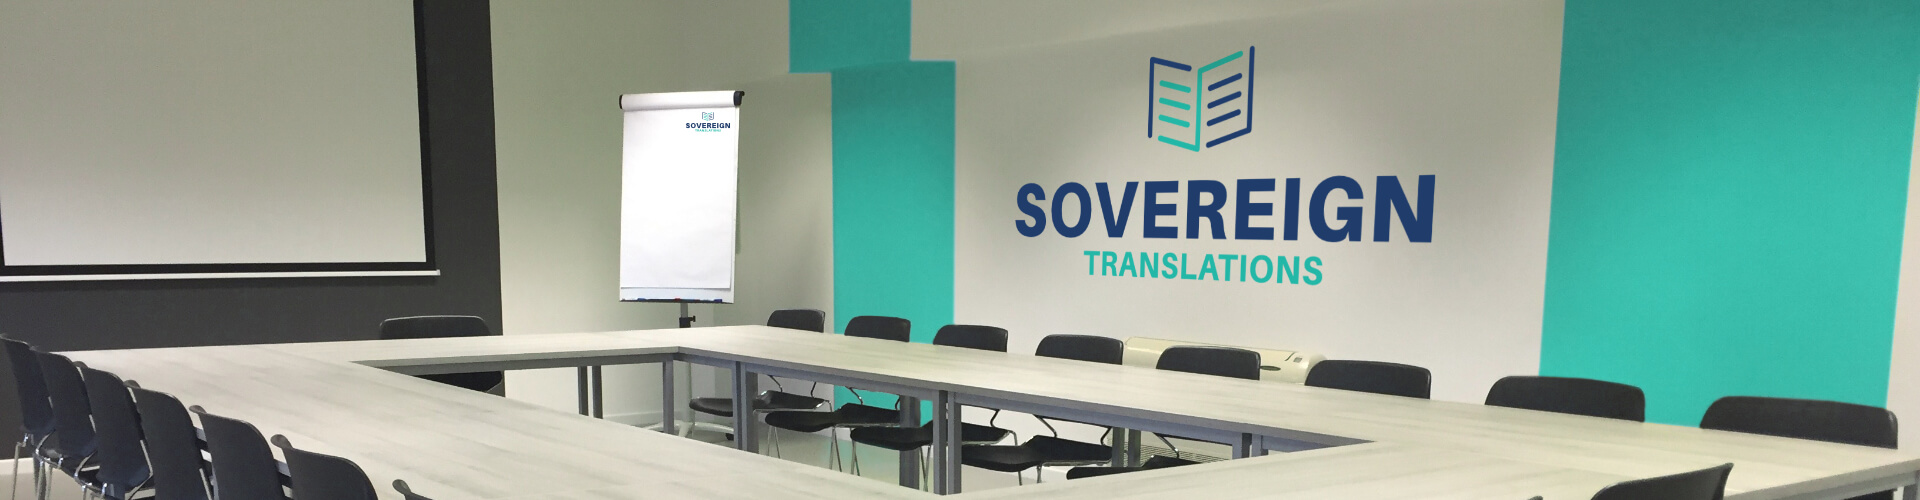 A seminar room with blackboard, whiteboard, beamer and sovereign translation logo, in which a learning material translation can be used